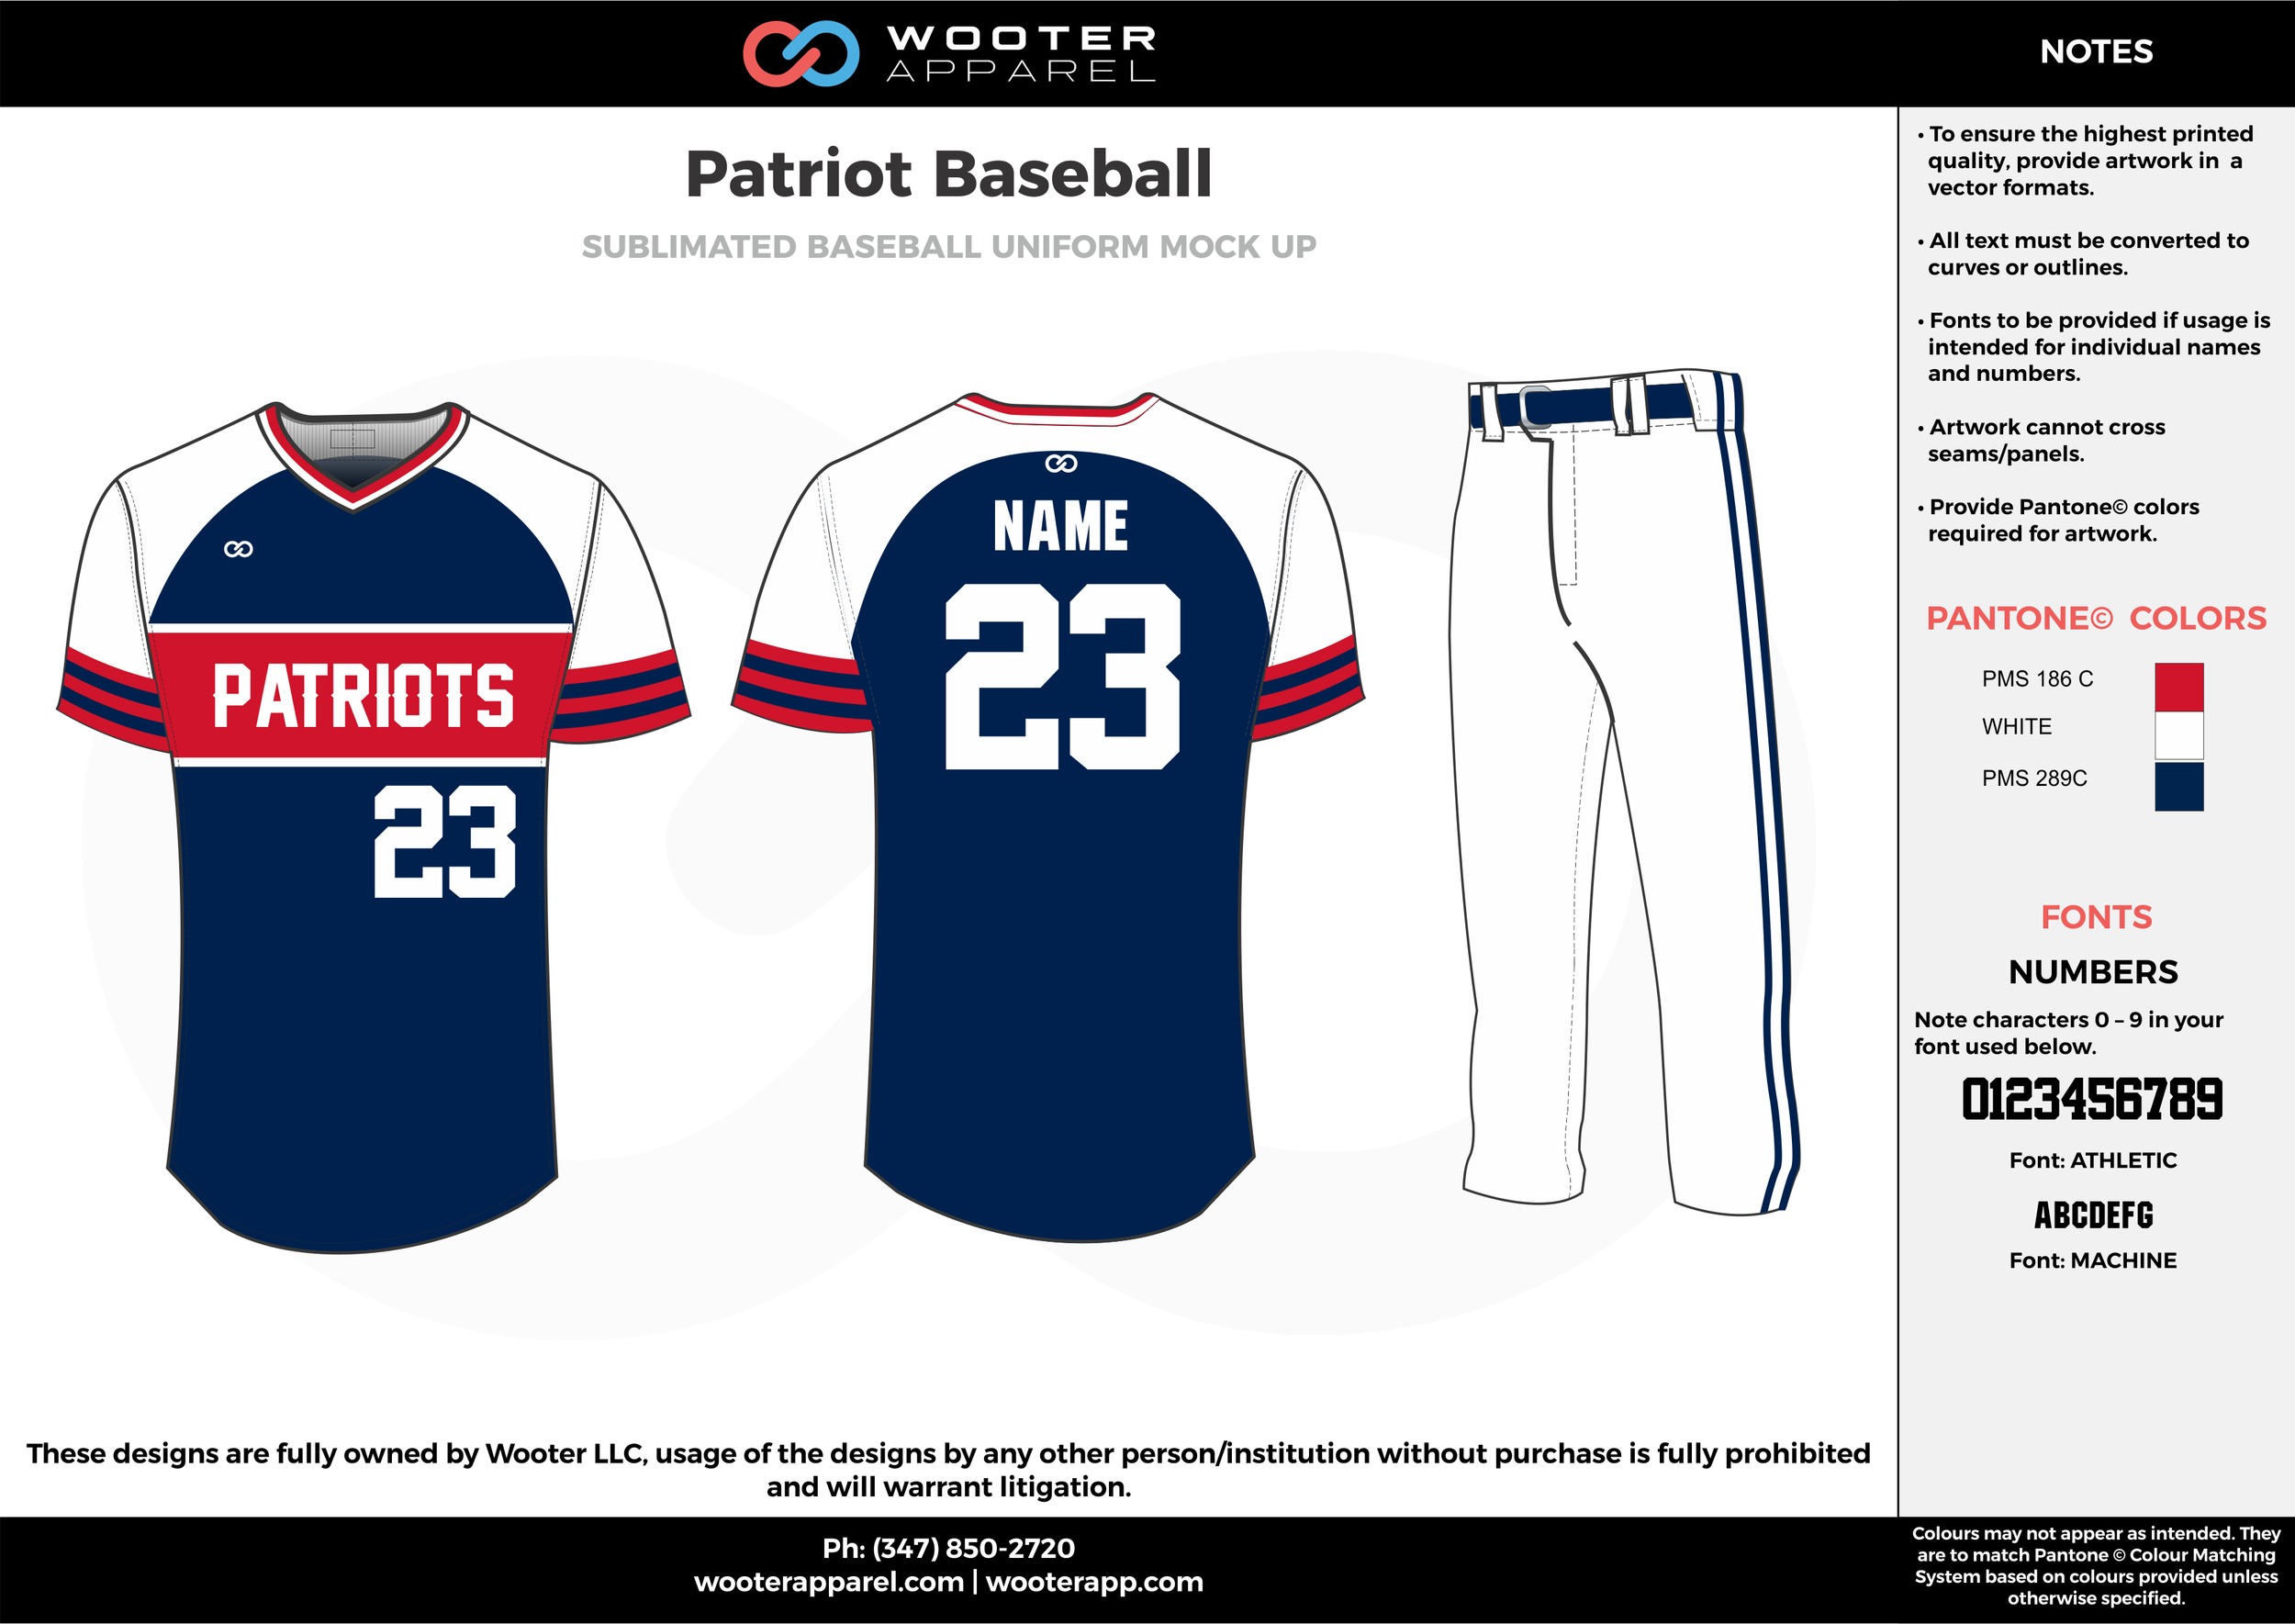 PATRIOT BASEBALL navy blue white red baseball uniforms jerseys pants